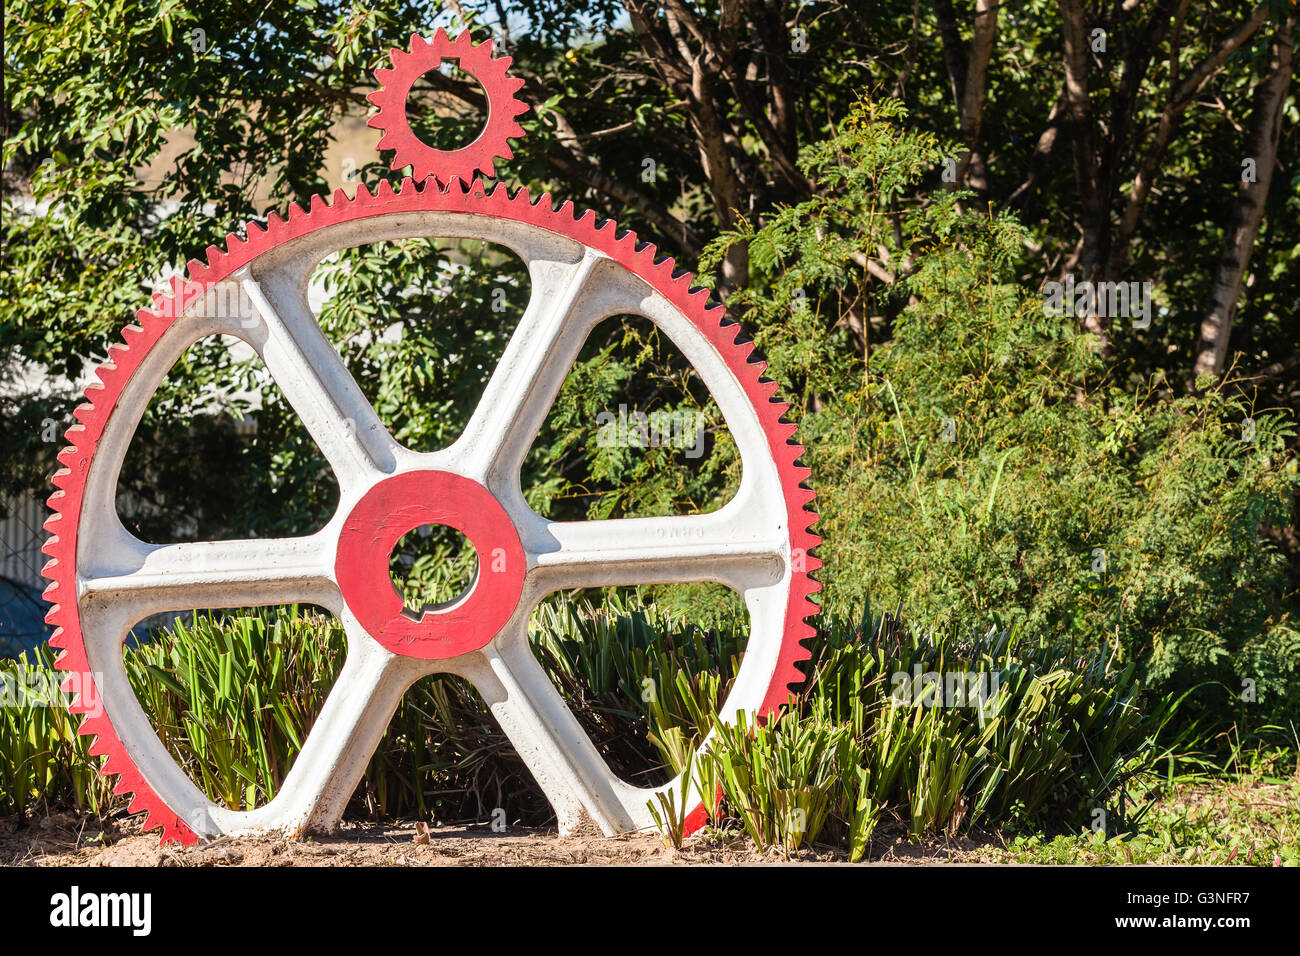 Wheel gears with drive gear sprocket outside engineering machining workshop - Stock Image